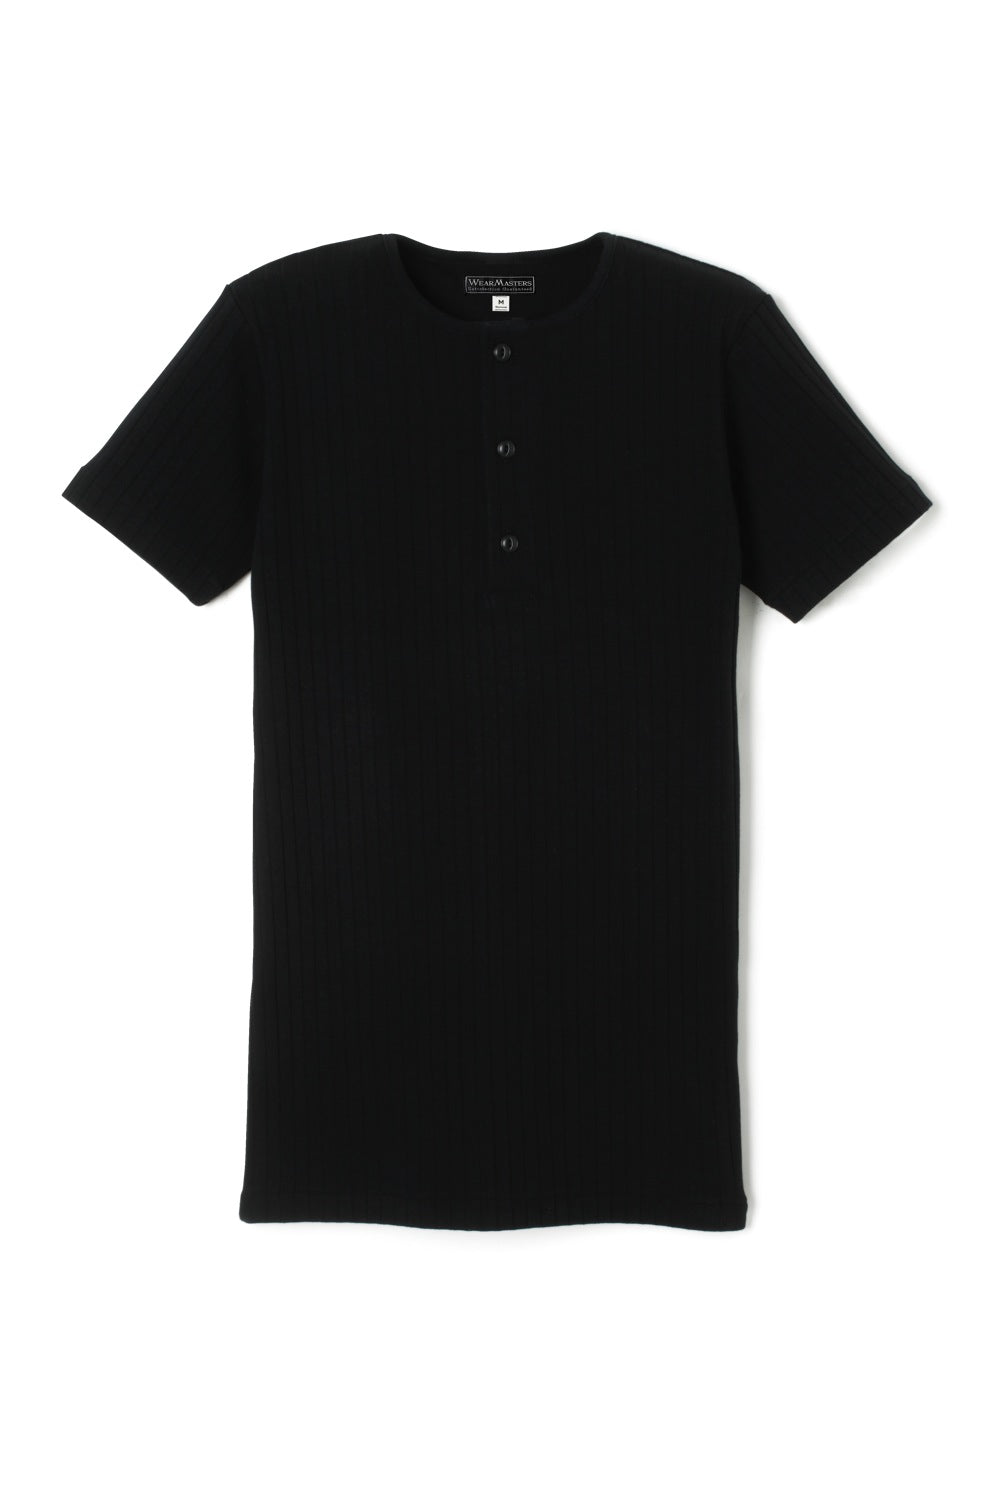 Lot.426 Dropped Stitch Henley Tee -Black-